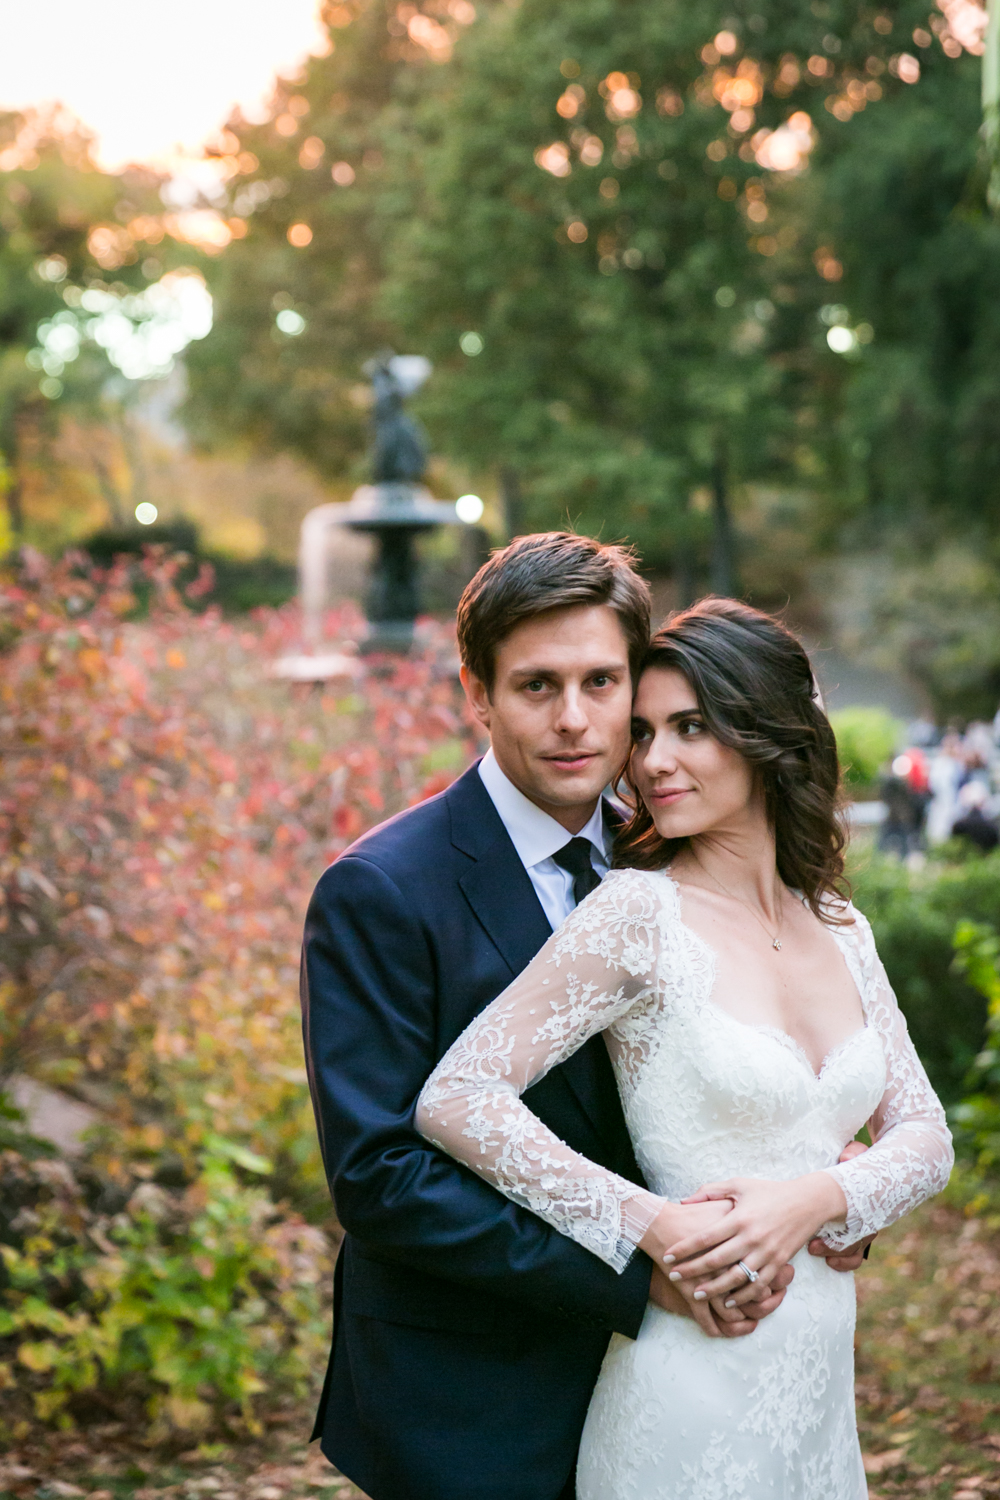 Bride and groom in Central Park with Bethesda Fountain in background